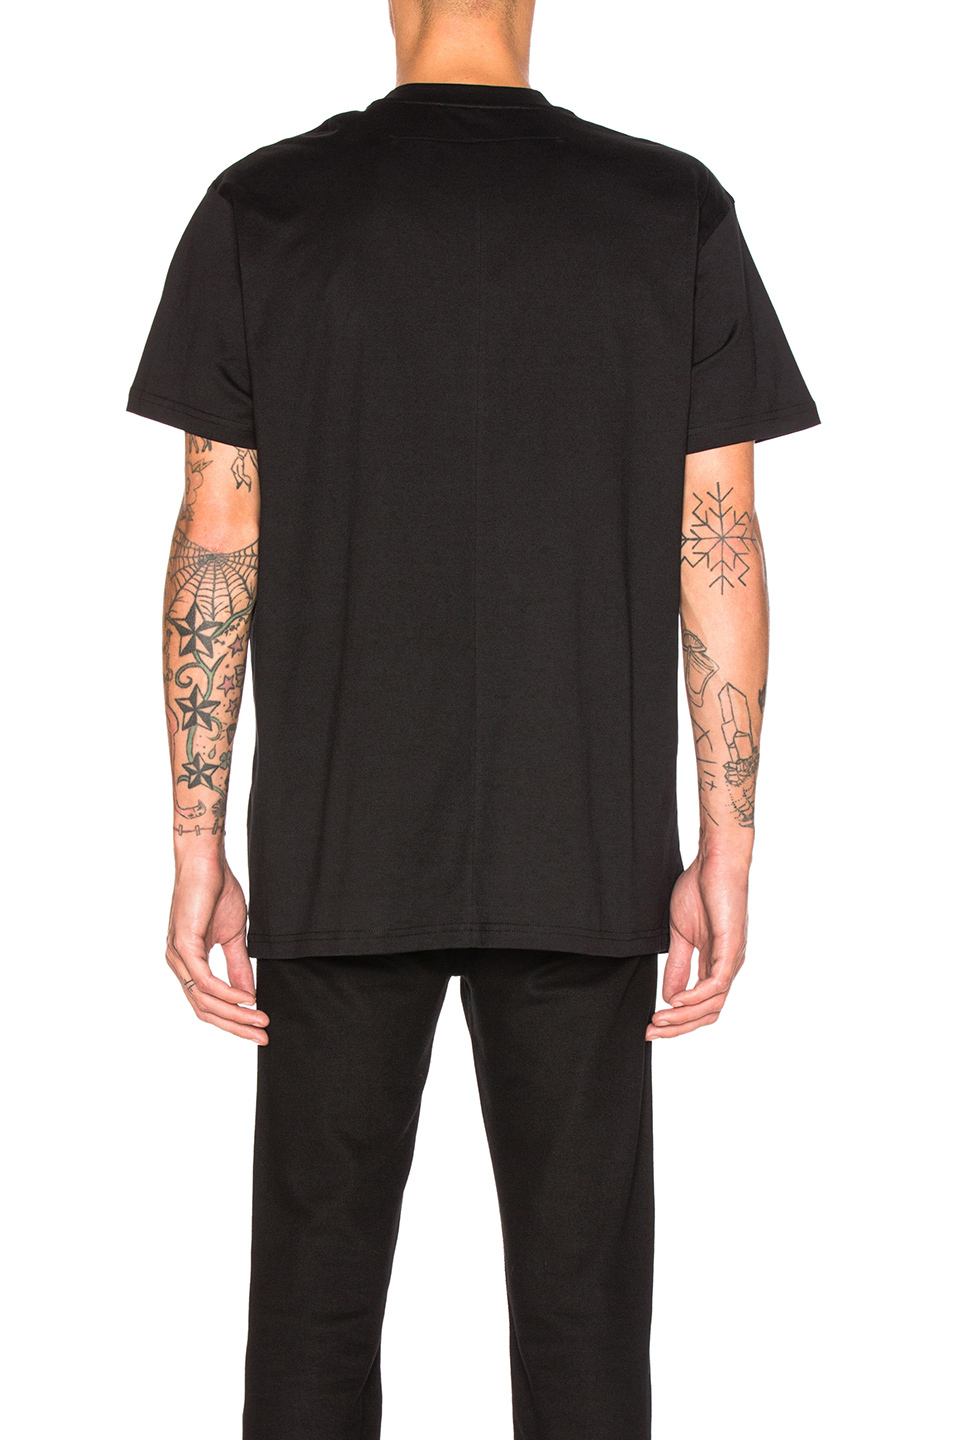 【GIVENCHY】Realize Tee ジバンシィ